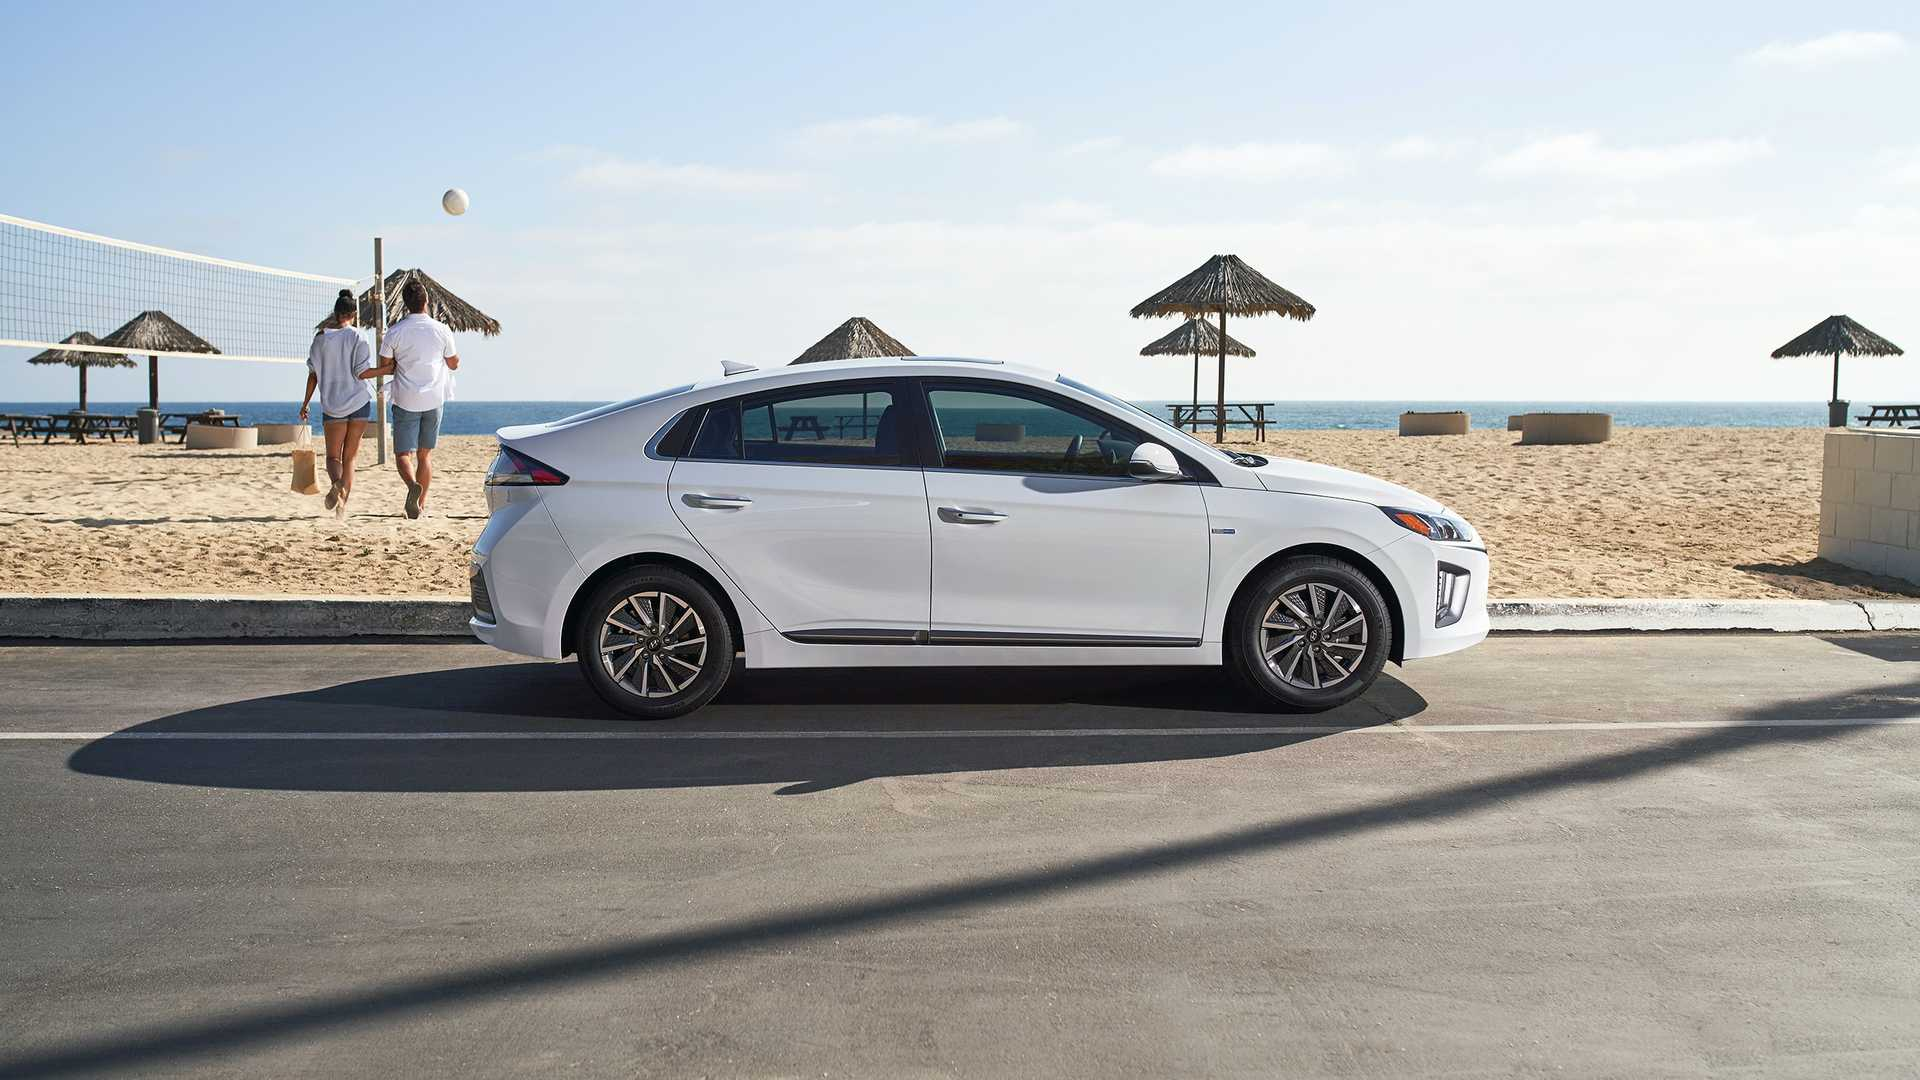 2020 hyundai ioniq electric features larger battery, 170